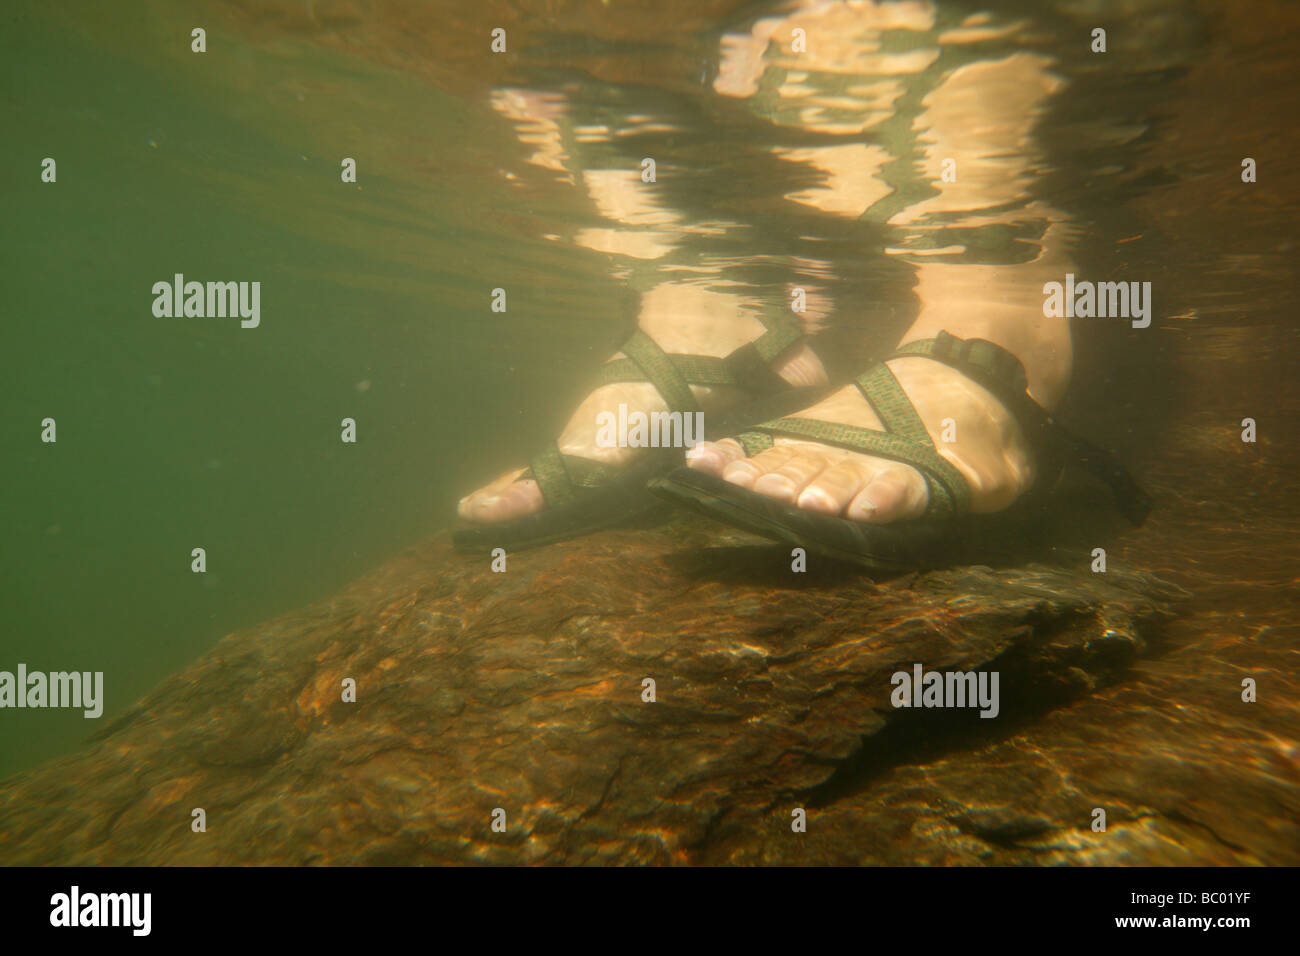 Underwater view of a man's feet in sandals. - Stock Image